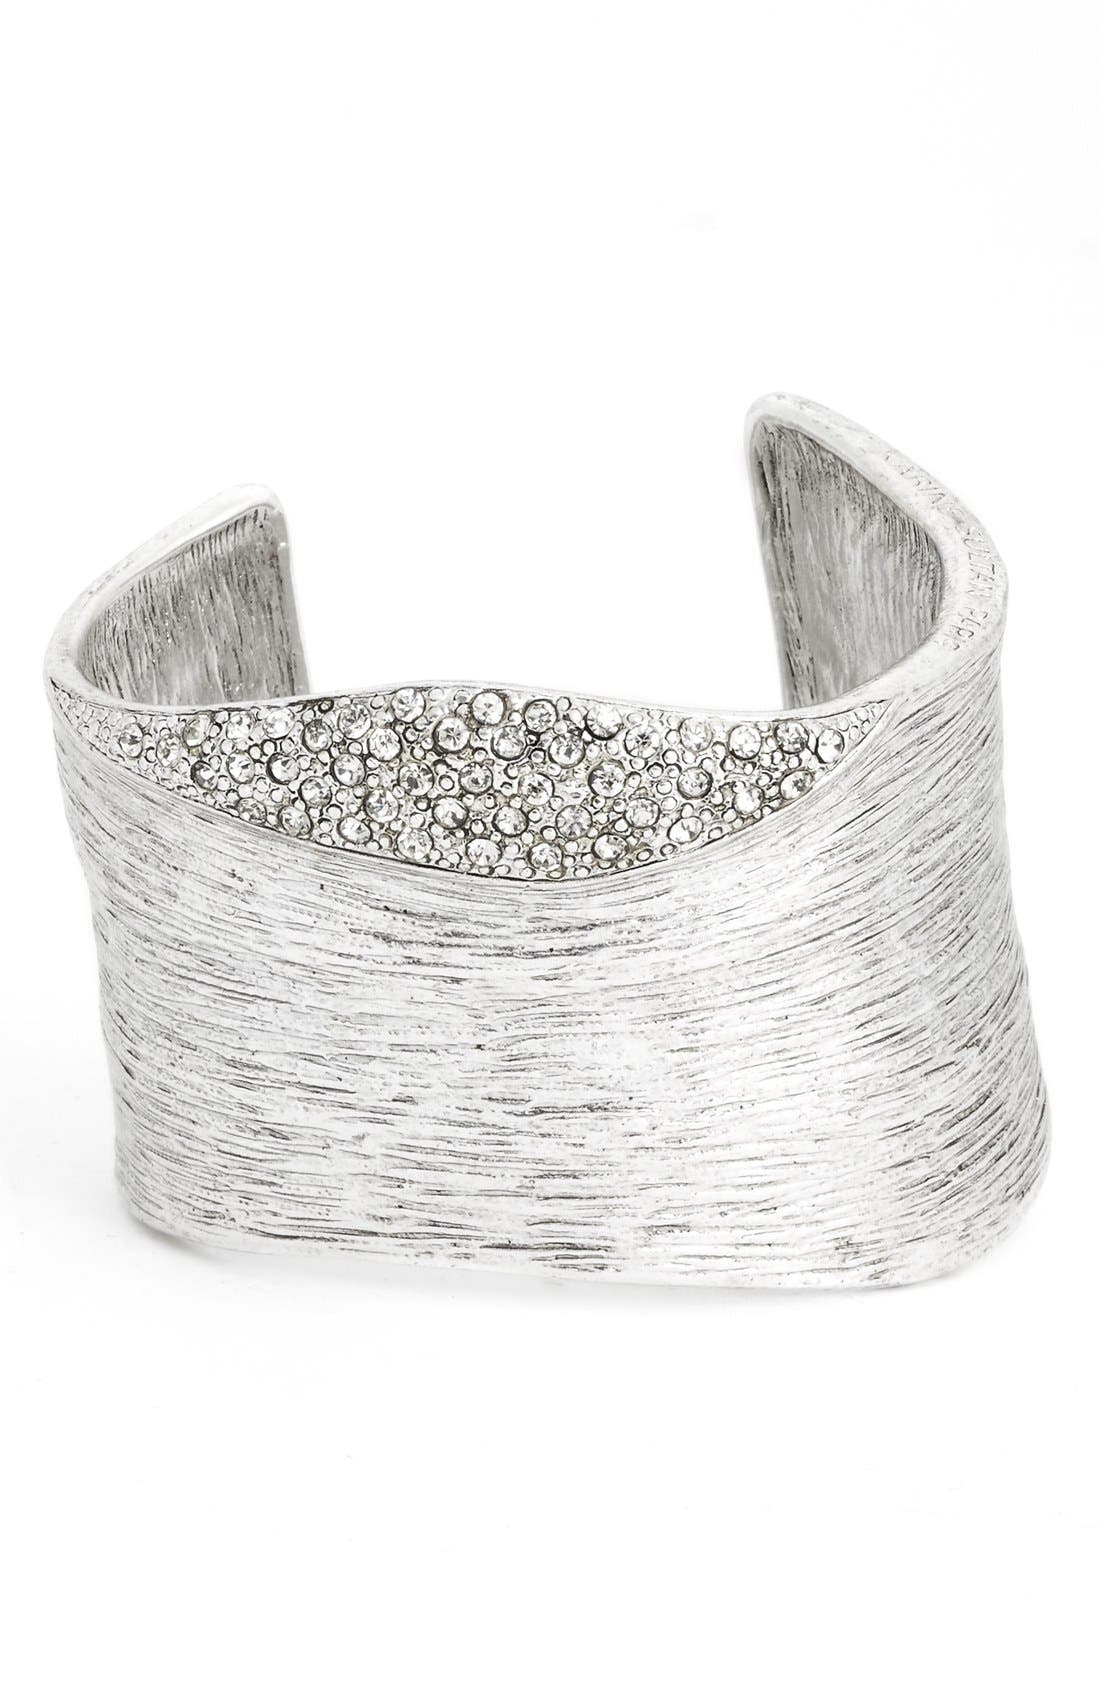 Textured Cubic Zirconia Cuff,                             Main thumbnail 1, color,                             SILVER